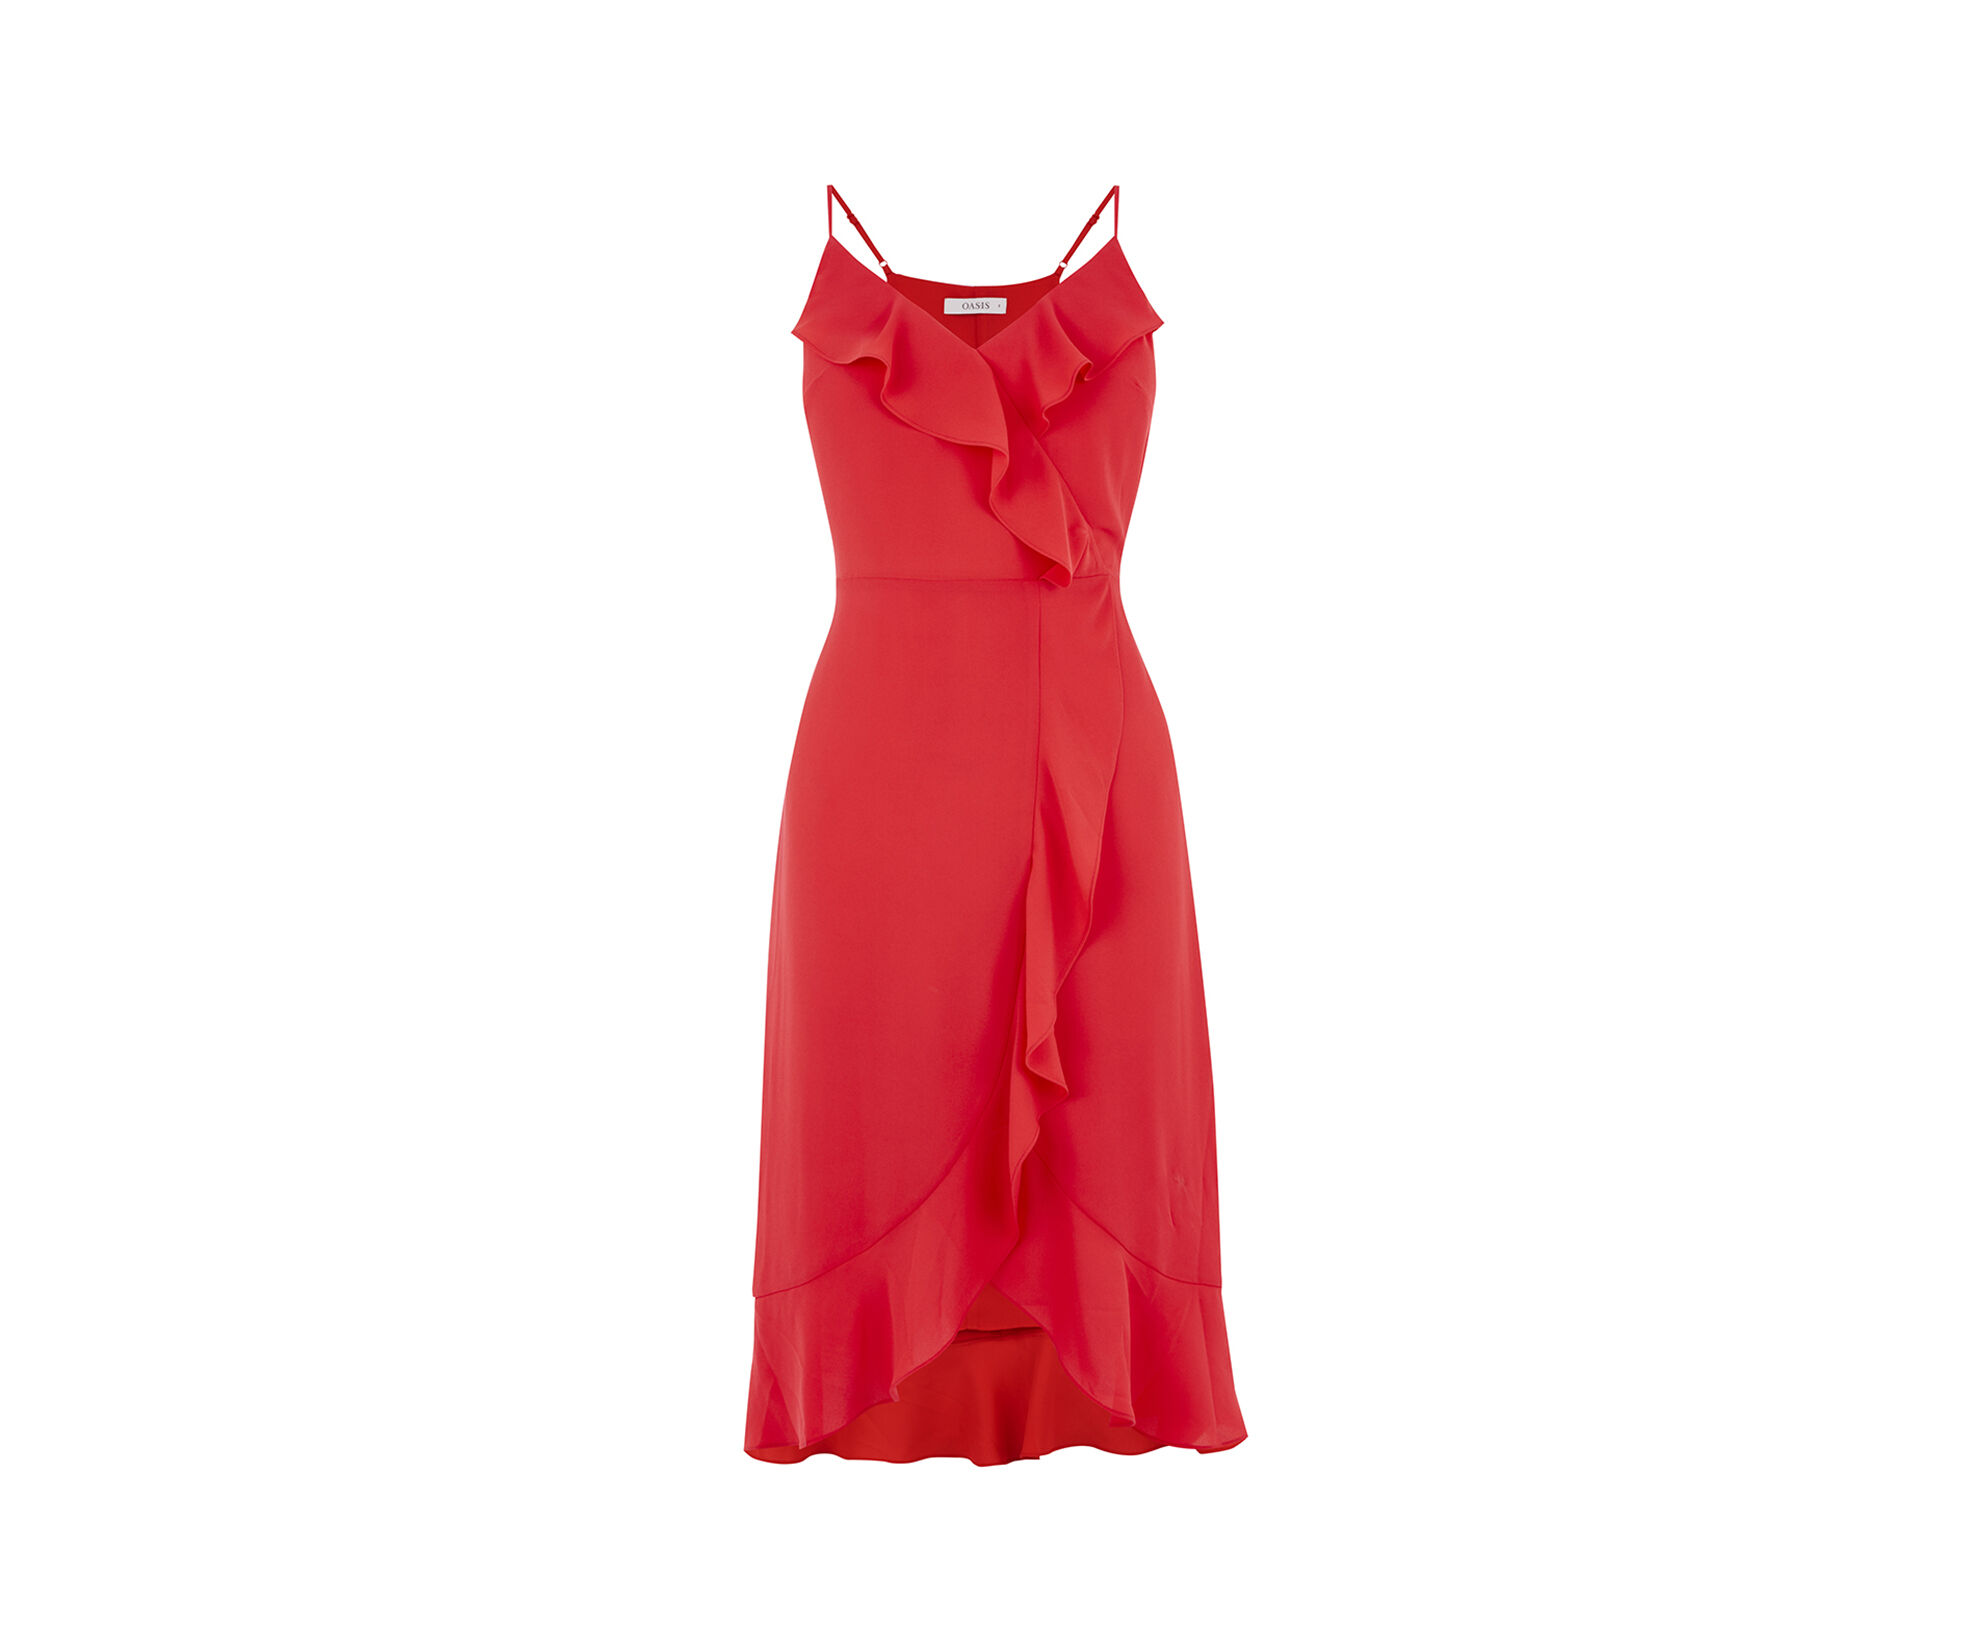 Red long dress outfit handforth